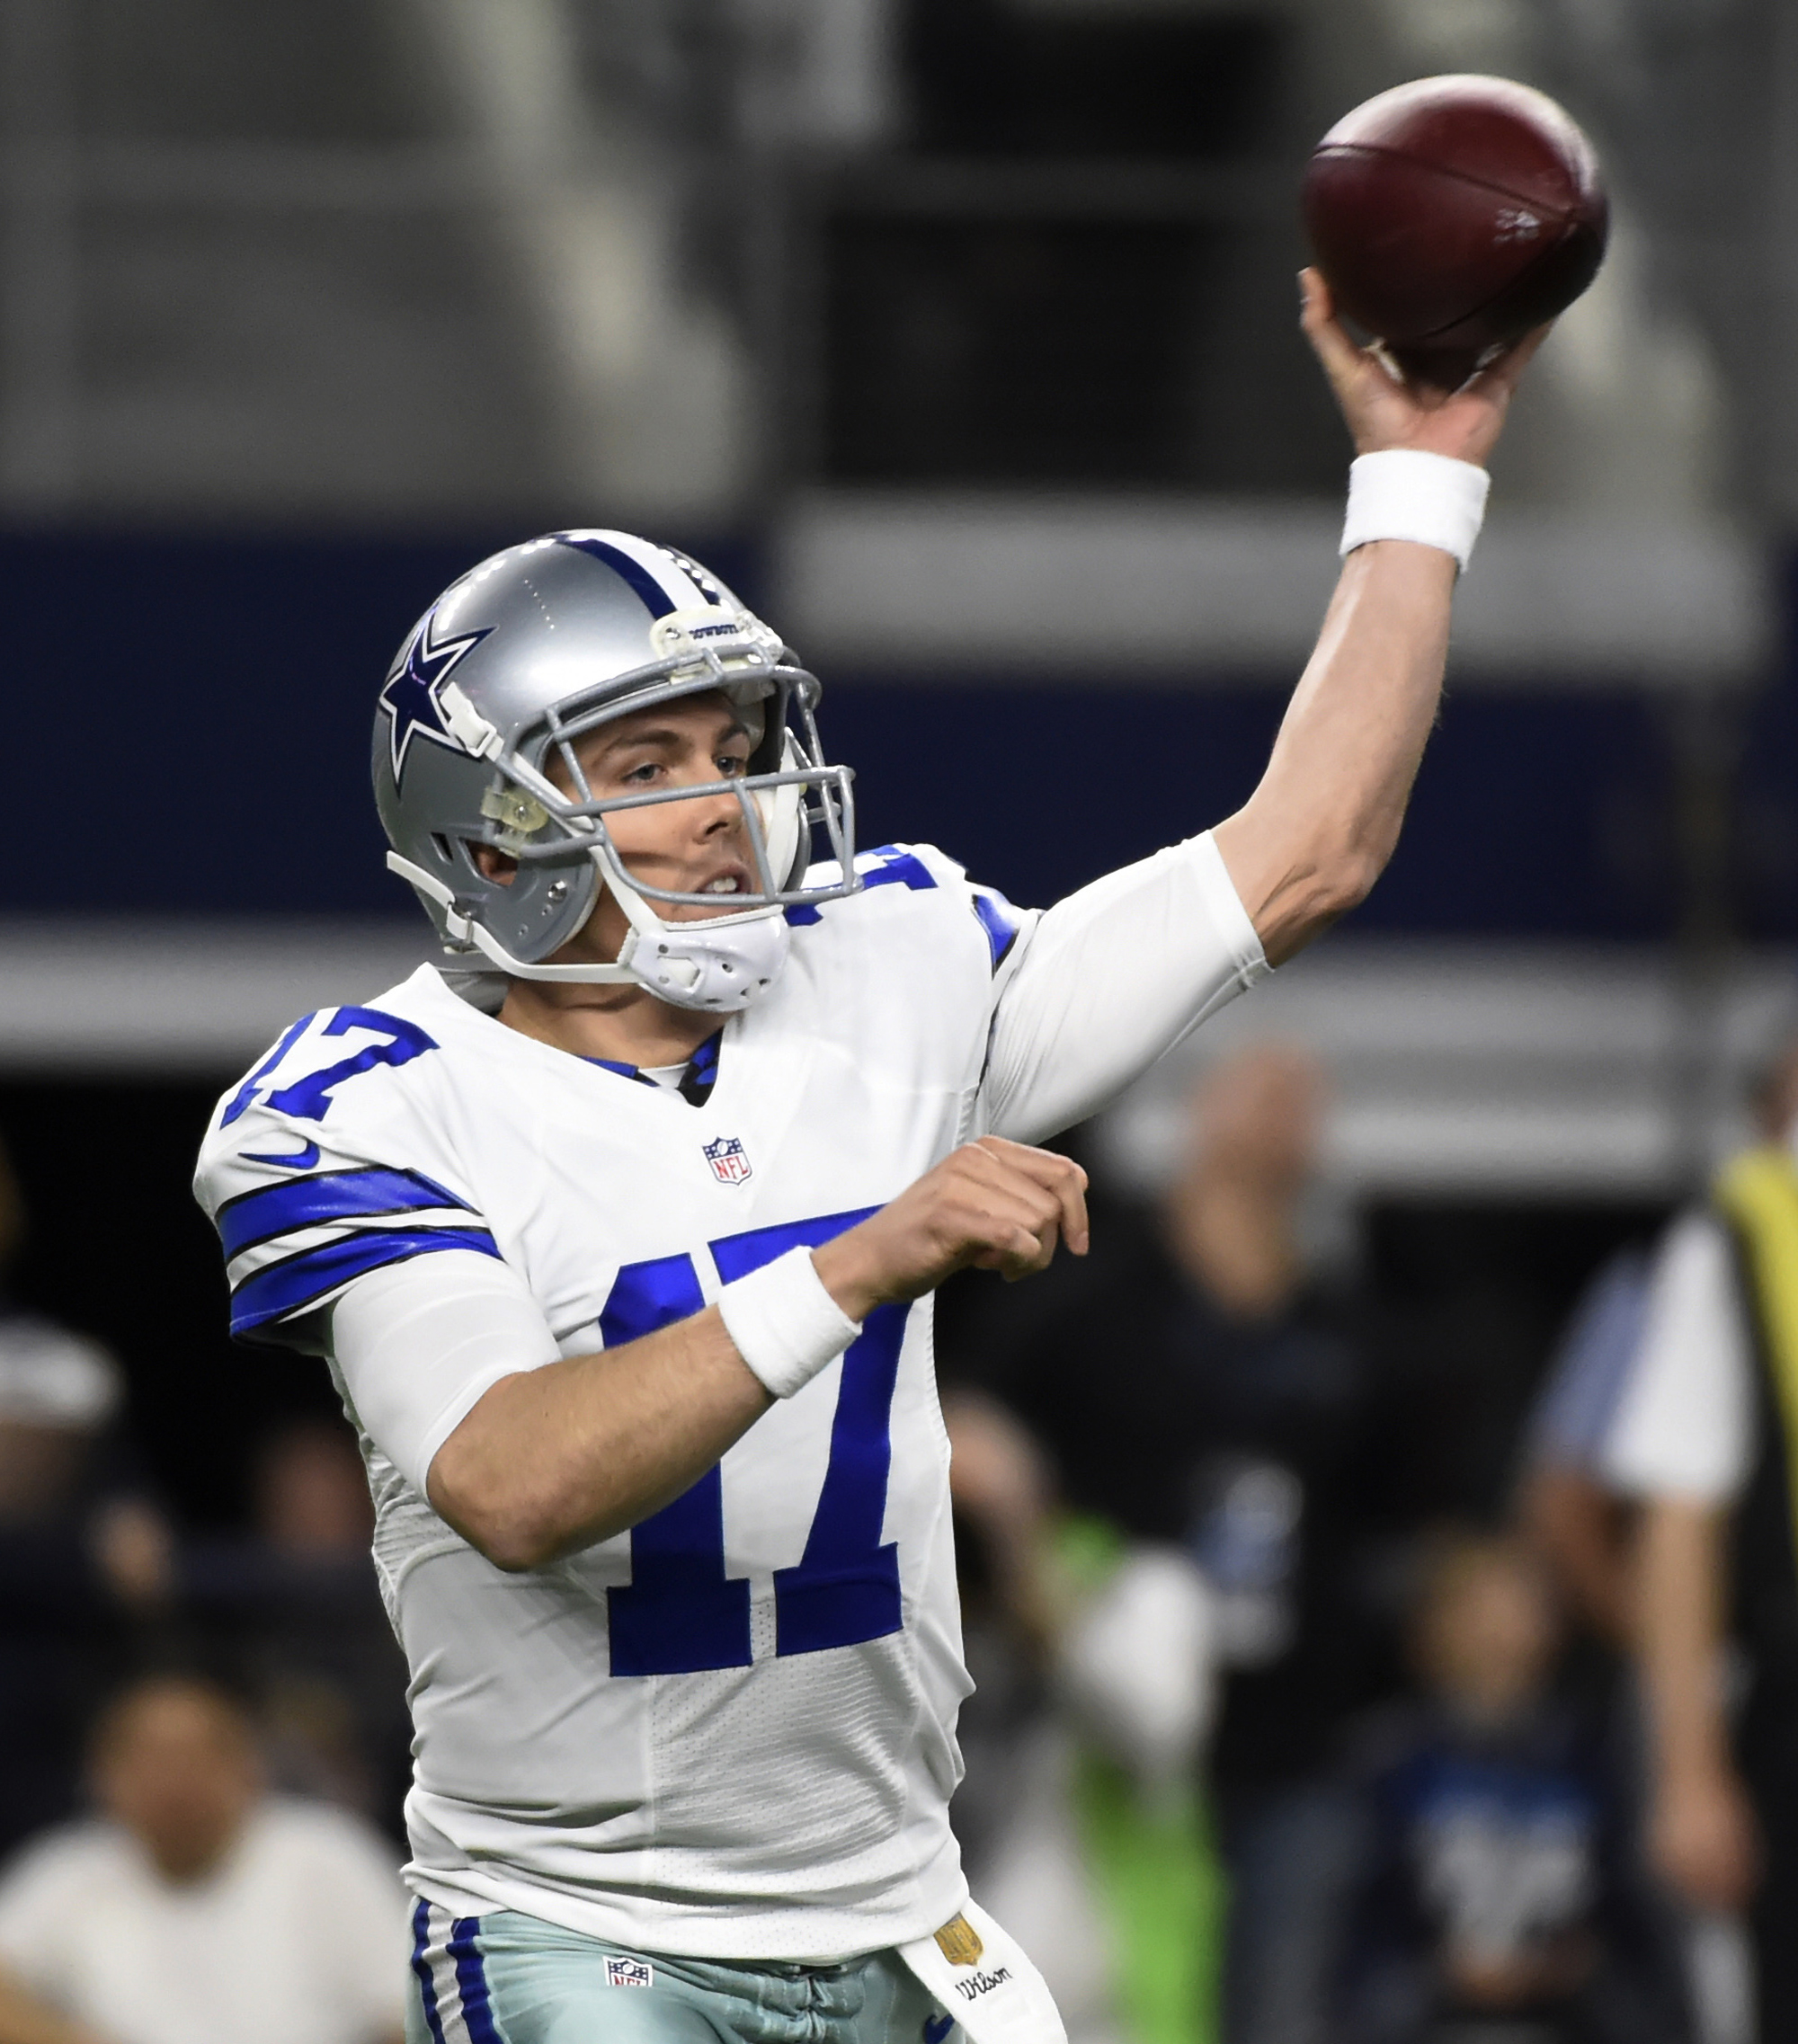 FILE - In this Dec. 19, 2015, file photo, Dallas Cowboys quarterback Kellen Moore (17) throws a pass during the first half of an NFL football game against the New York Jets in Arlington, Texas. Moore will be the fourth starting quarterback this season for